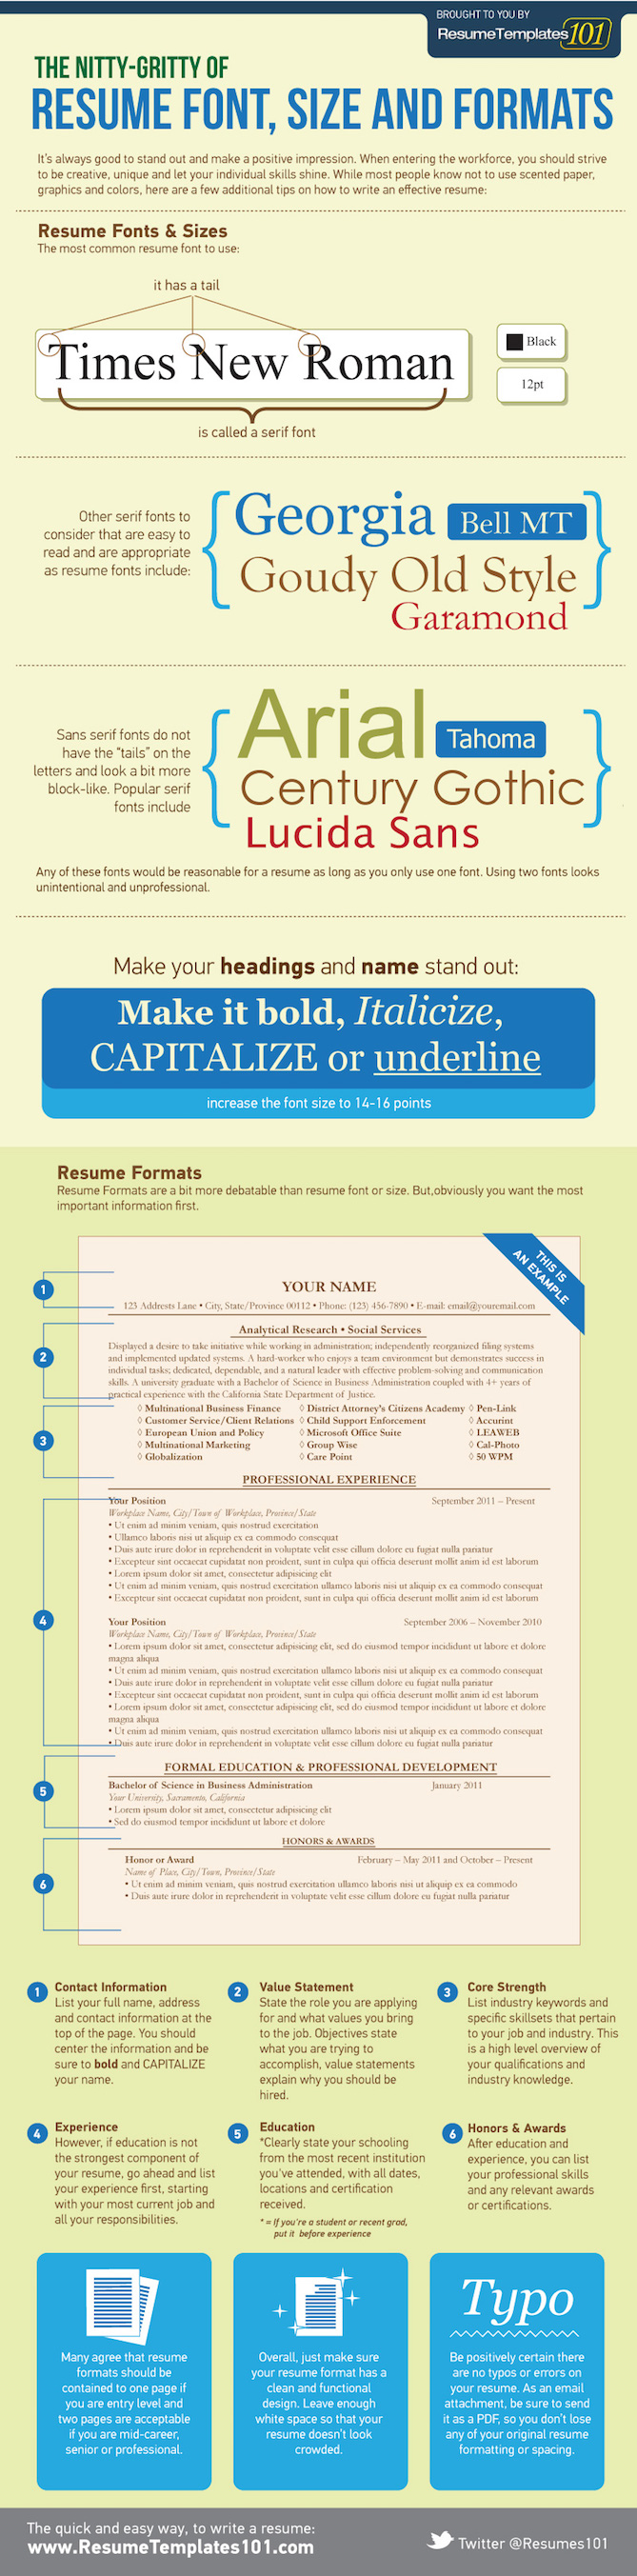 Resume Infographic On How To Format A Resume Using The Best Font Type, Font Size,